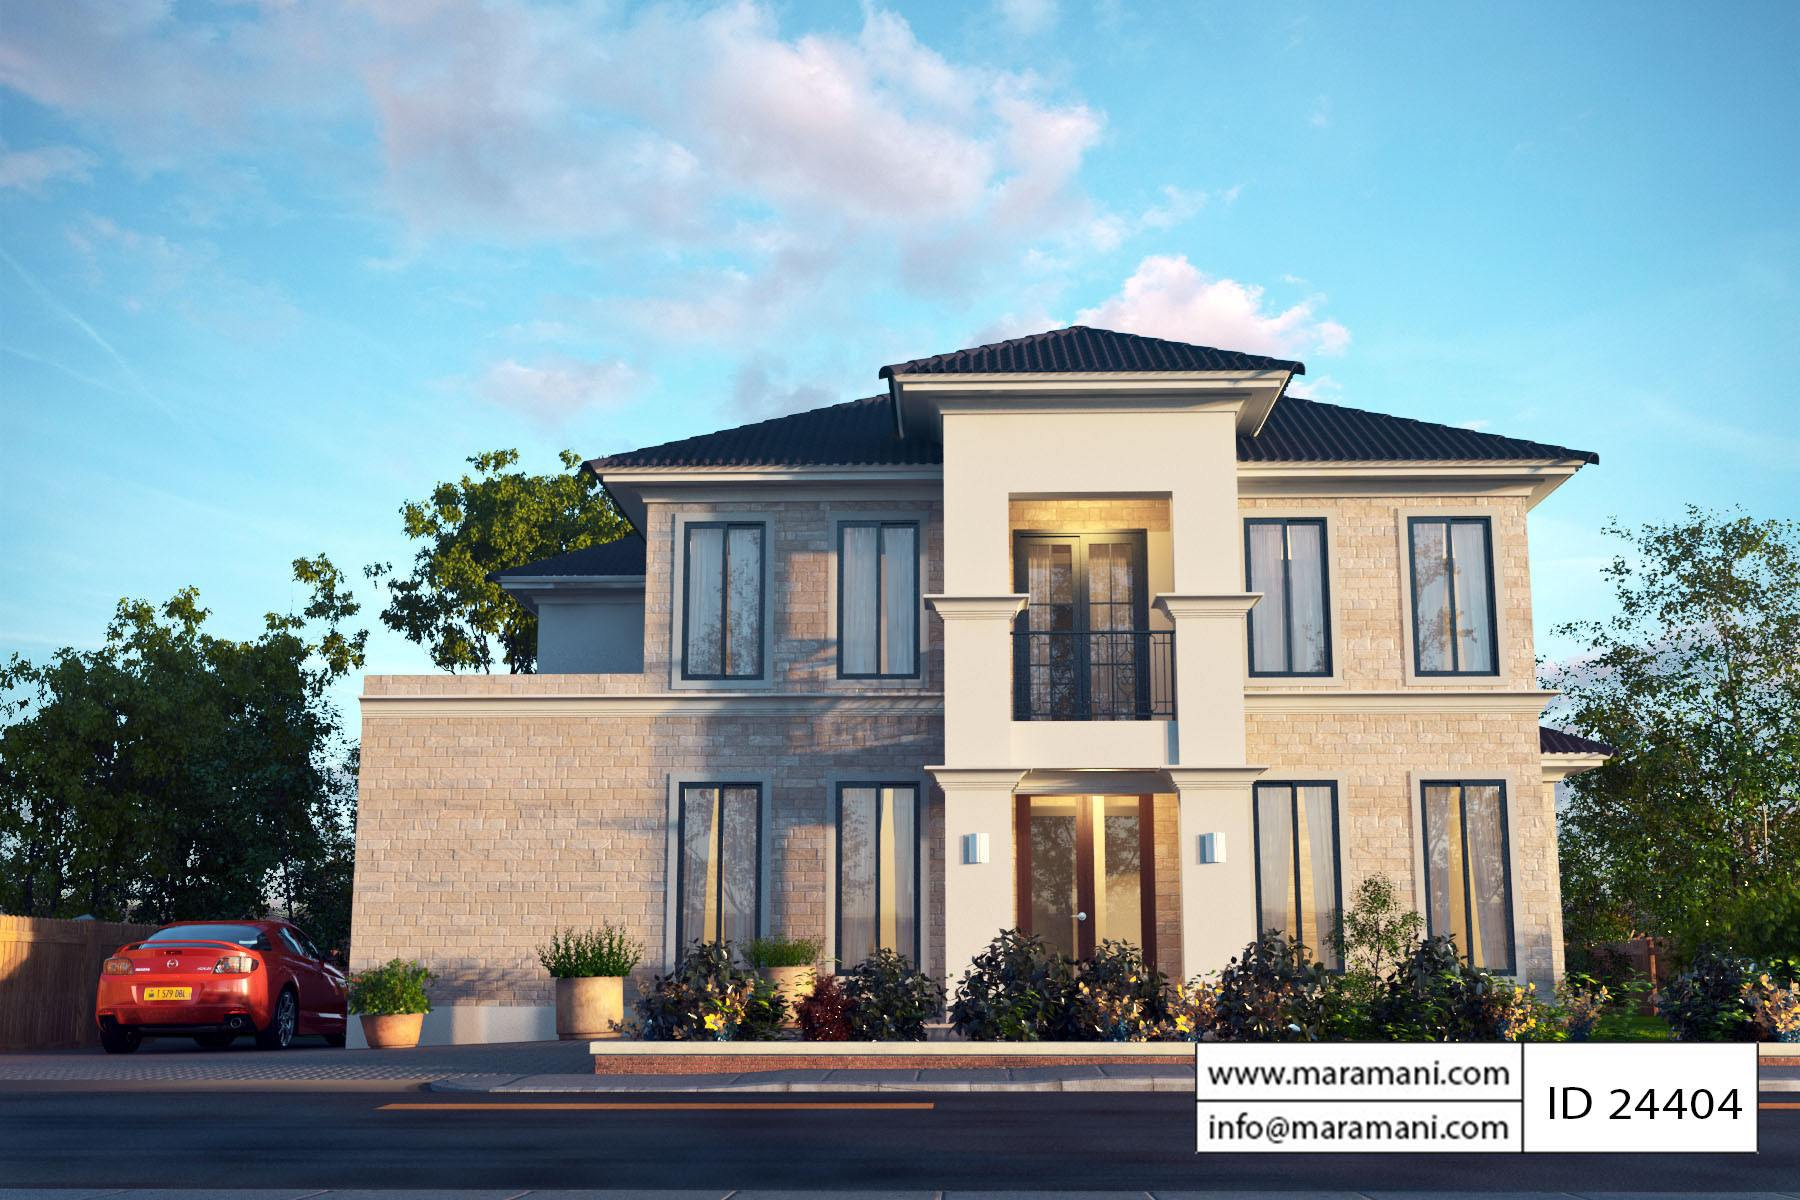 four bedroom modern house plan house plans maramani com 18000 | 1 72832f81 1d2a 4d8f b8b9 1ddde19e9d4a v 1509443038